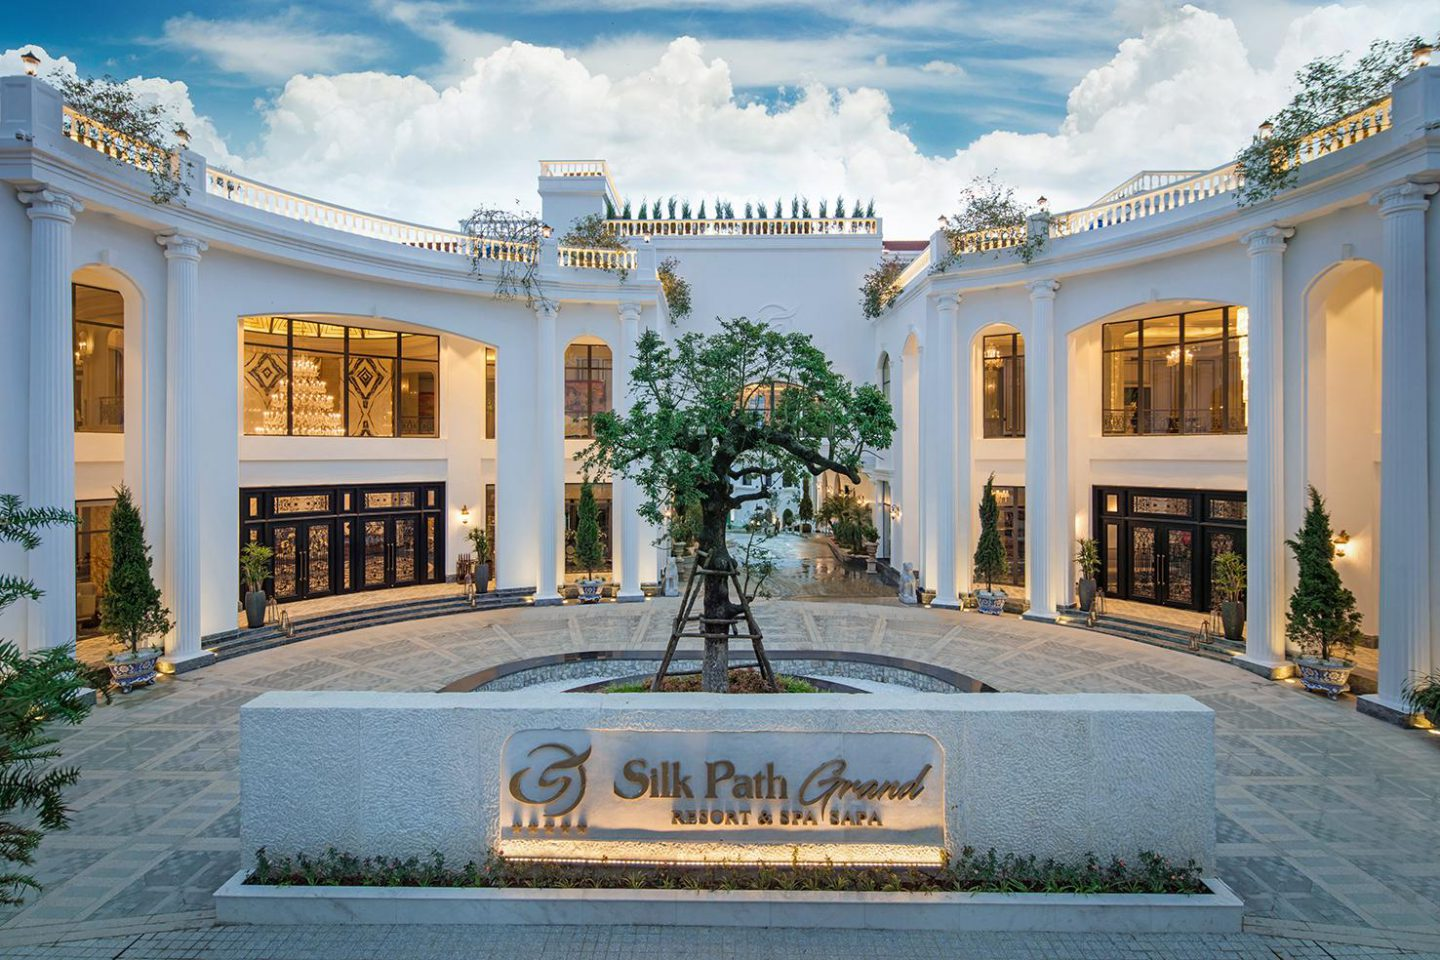 Silk Path Grand Resort & Spa